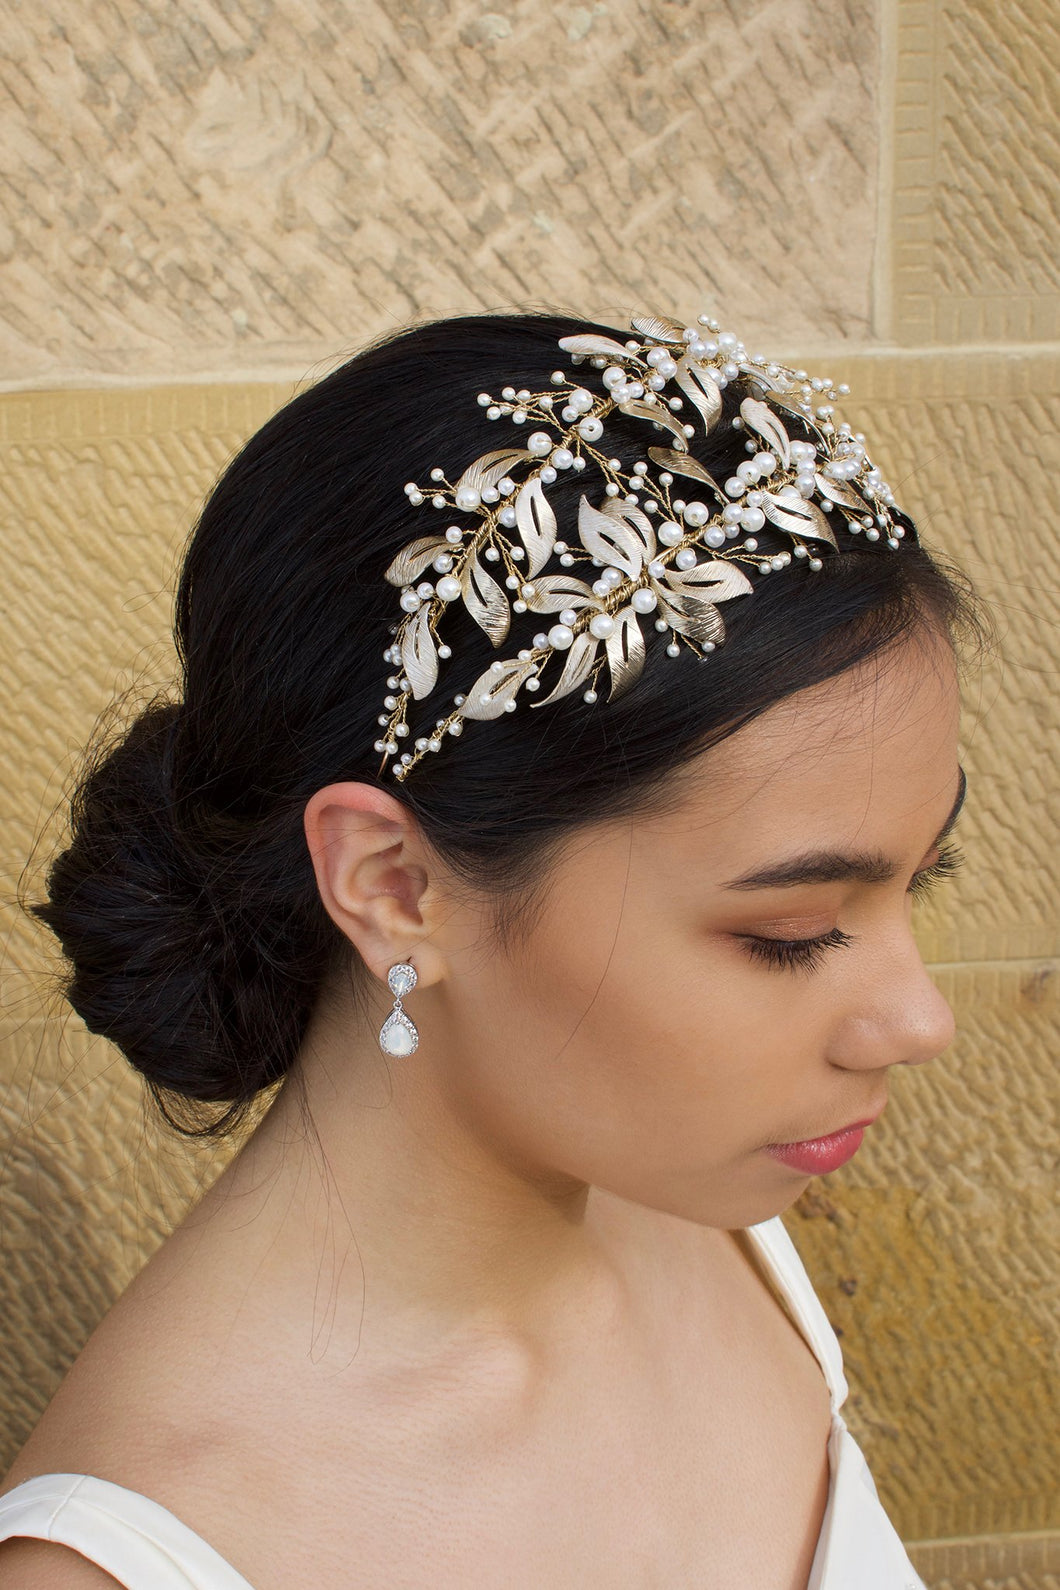 Double row pale gold headband with pearls worn by a dark hair model with a sandstone wall